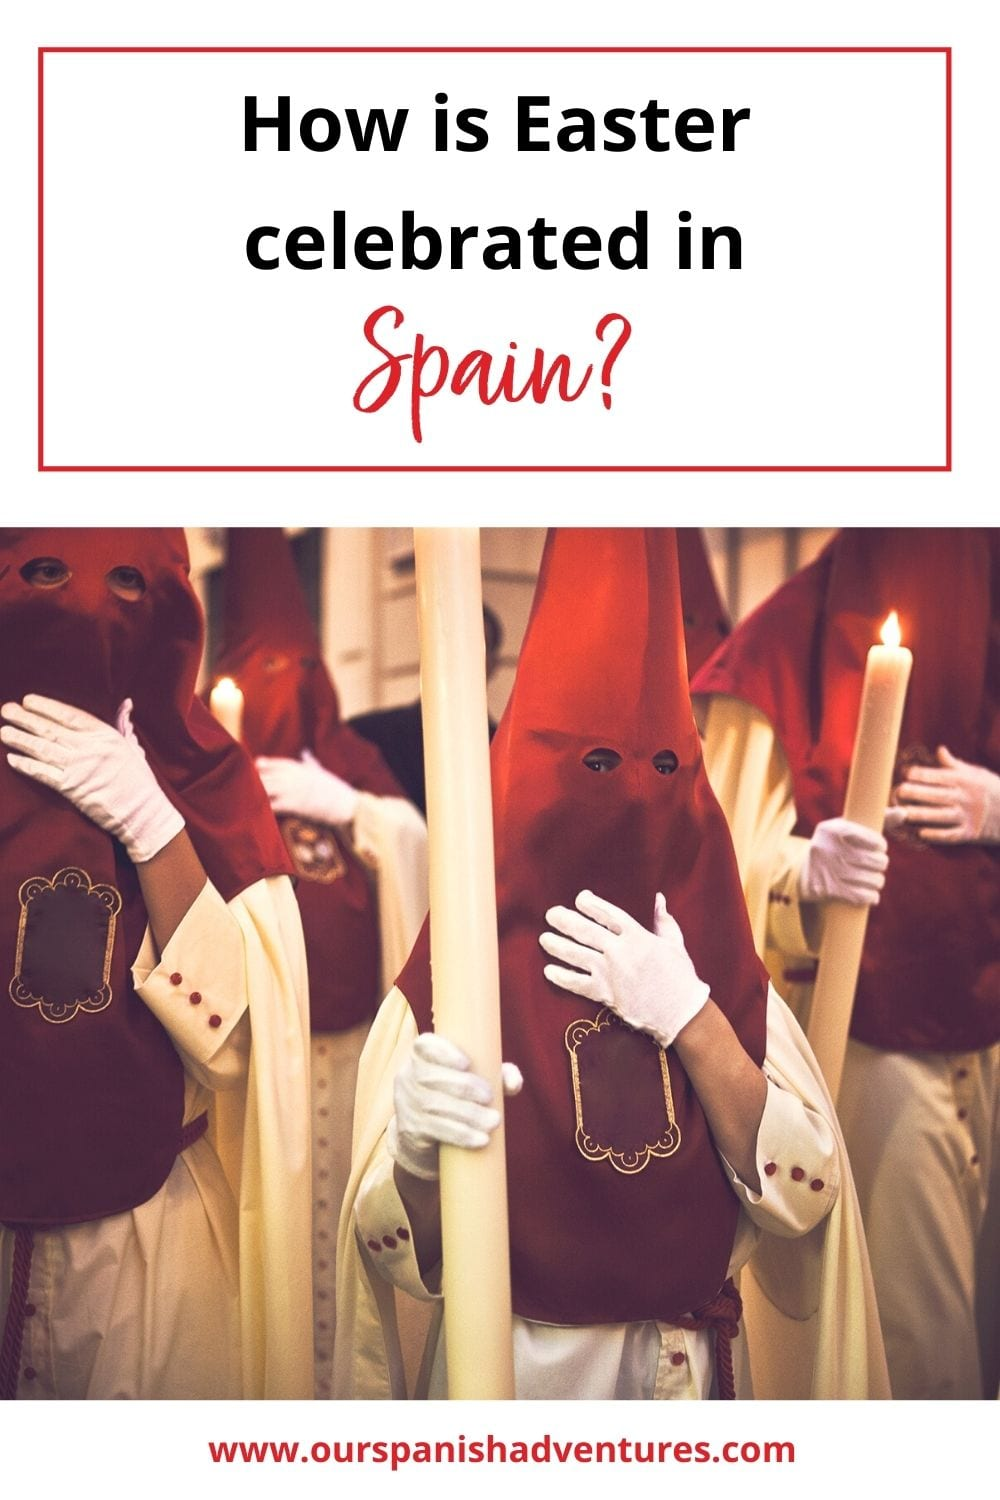 Celebrating Easter in Spain - Semana Santa | Our Spanish Adventures